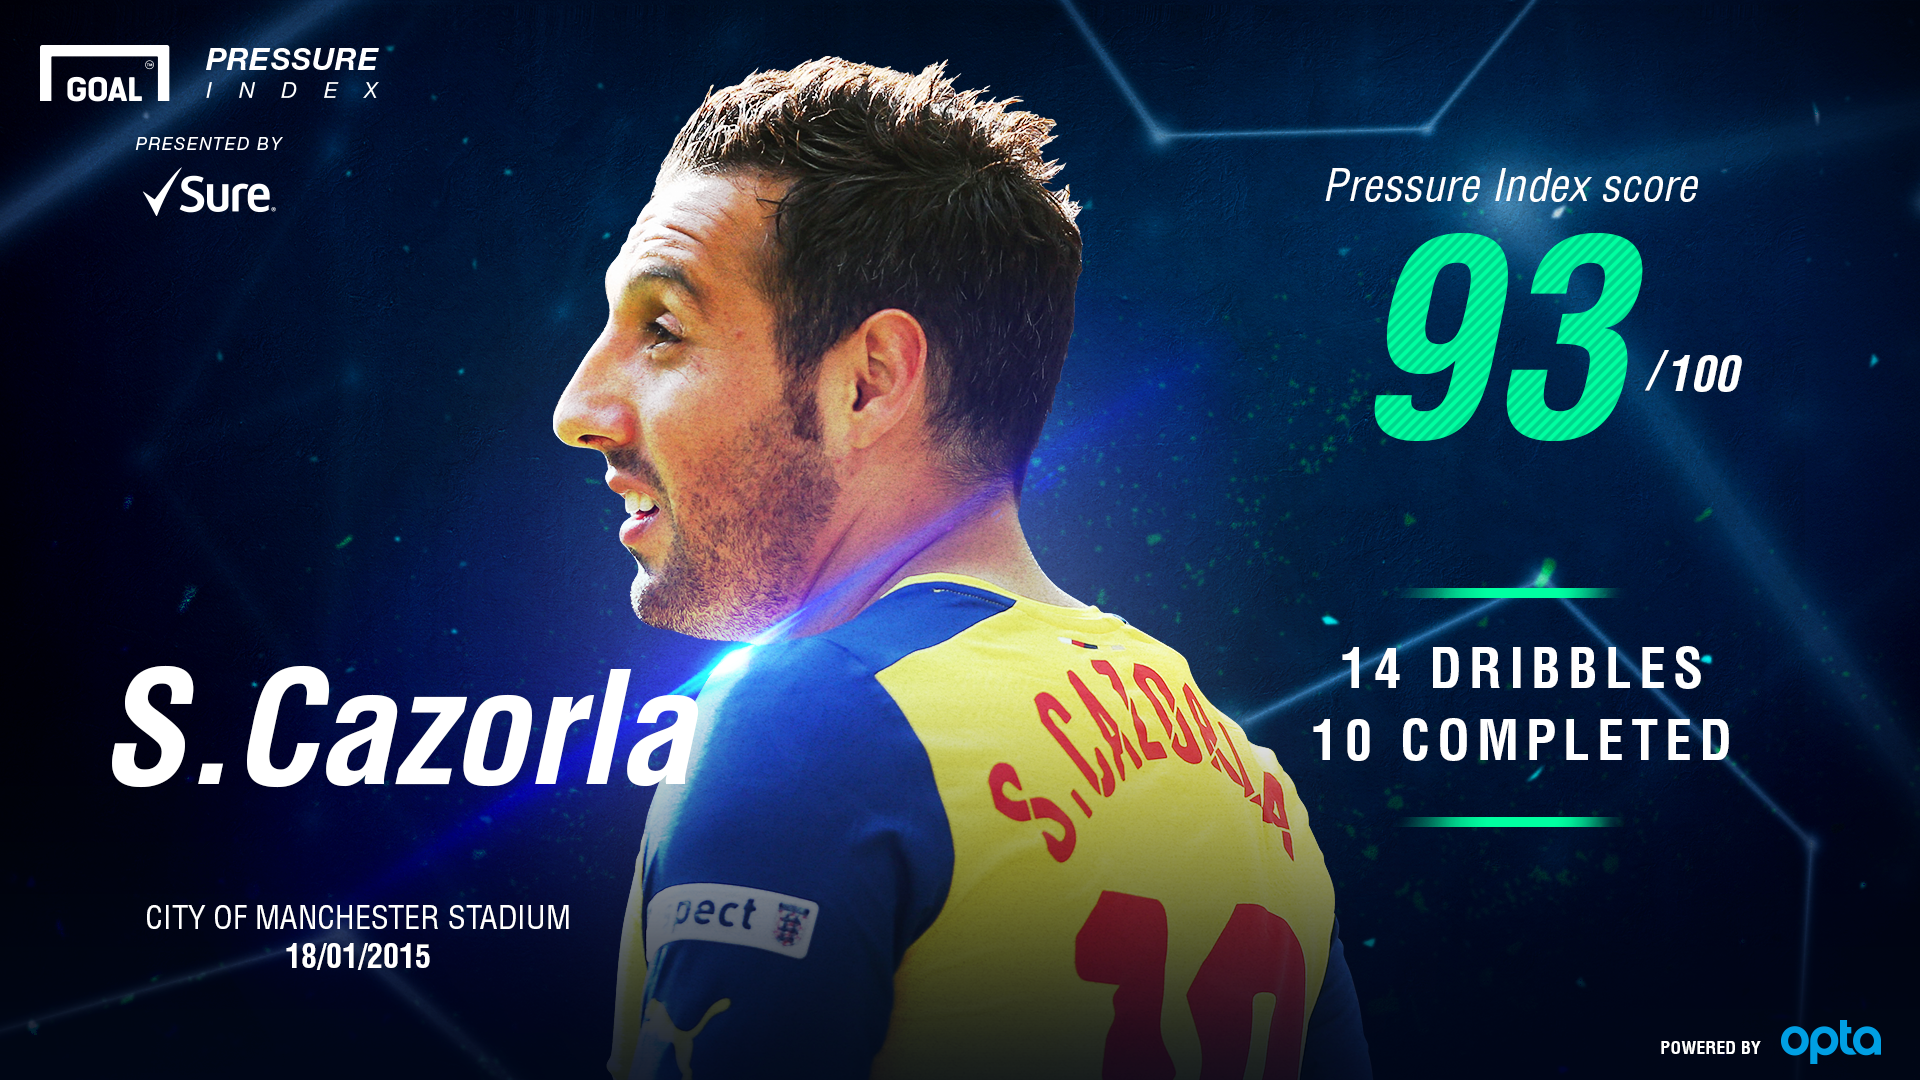 Cazorla Pressure Index